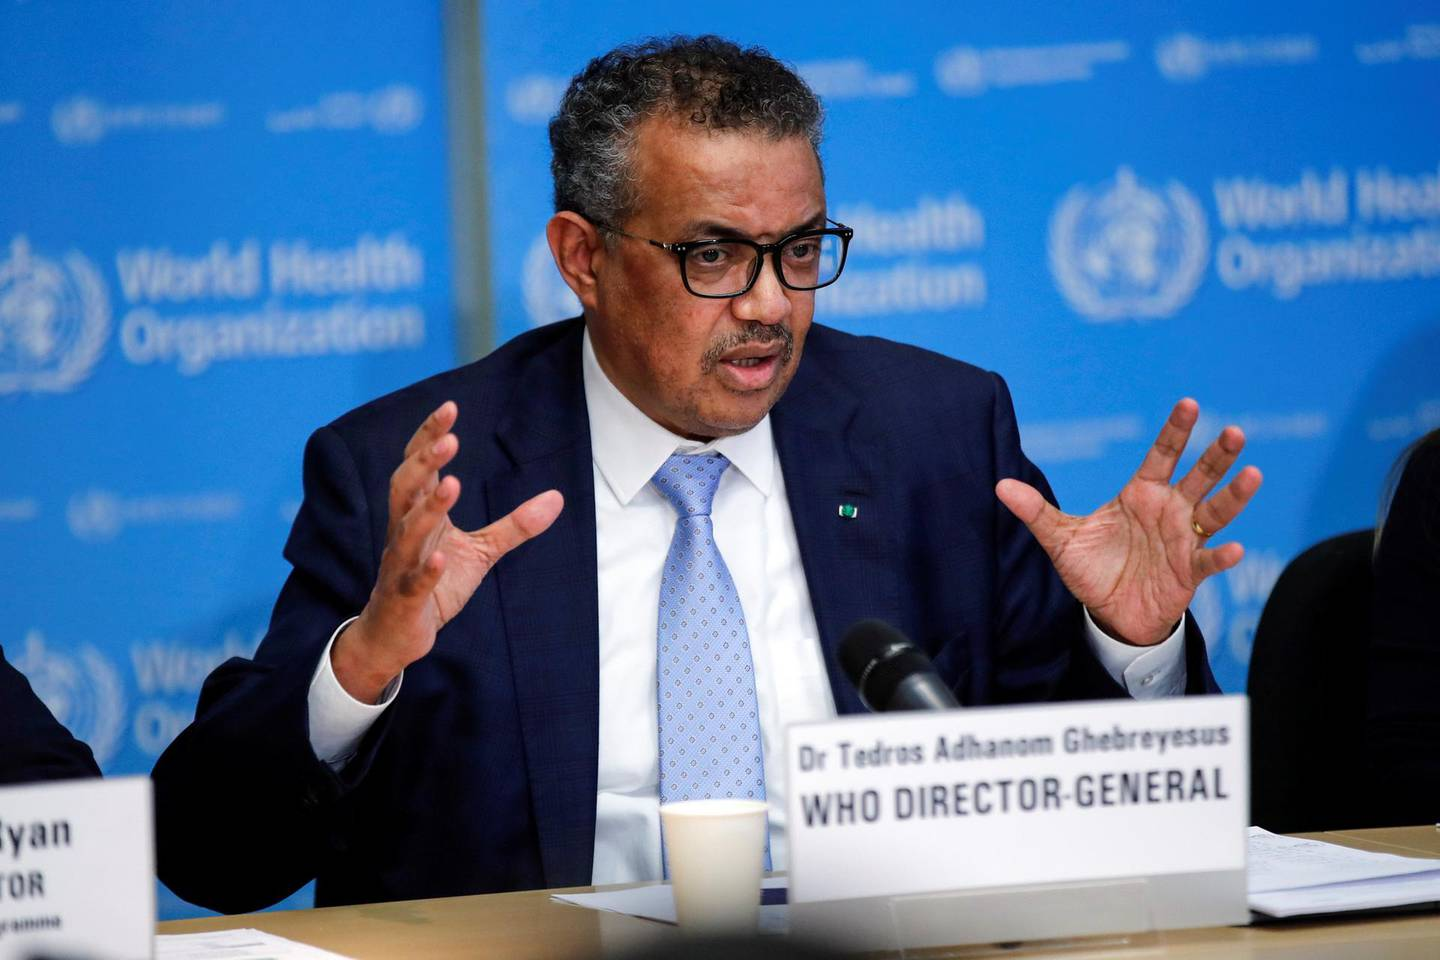 Tedros Adhanom Ghebreyesus, director general of the World Health Organization (WHO), gestures as he speaks during a news conference on the COVID-19 coronavirus outbreak in Geneva, Switzerland, on Monday, March 2, 2020. More than $1.1 trillion was wiped off the value of developing-nation stocks and bonds last week as the economic impact of the coronavirus worsened. Photographer: Stefan Wermuth/Bloomberg via Getty Images